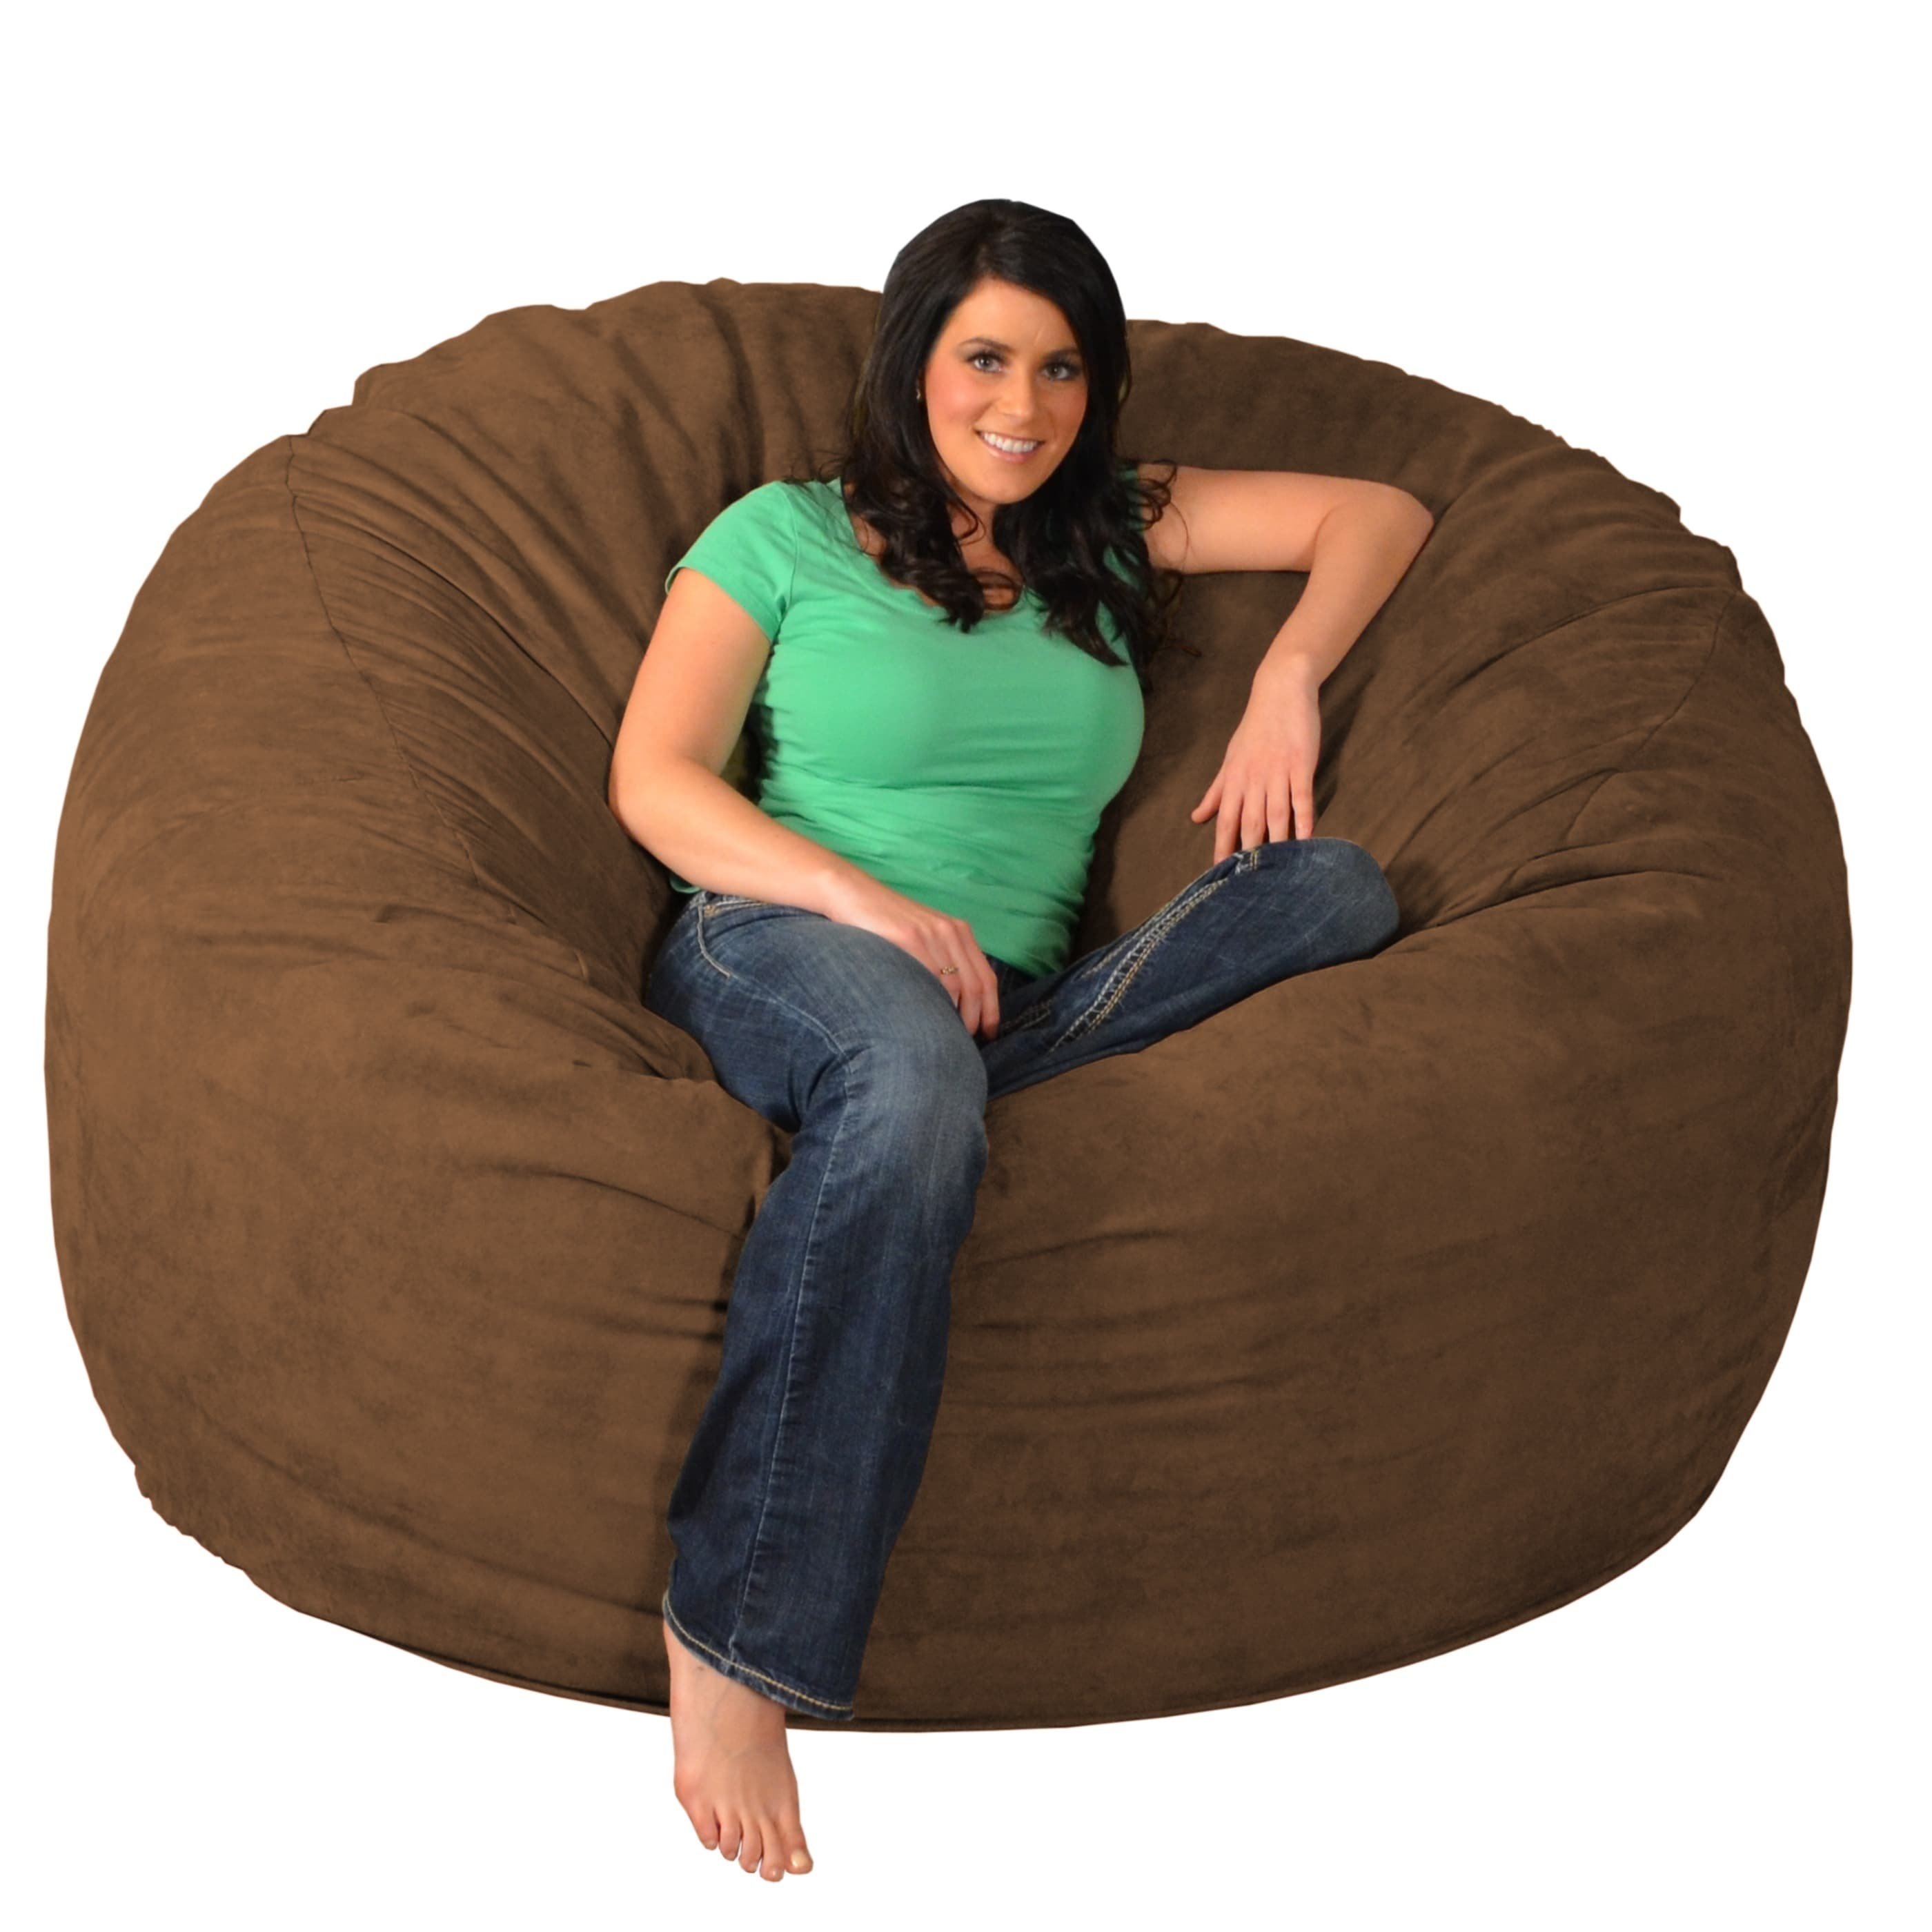 6 foot bean bag chair outdoor rocking chairs for sale shop giant memory foam on free